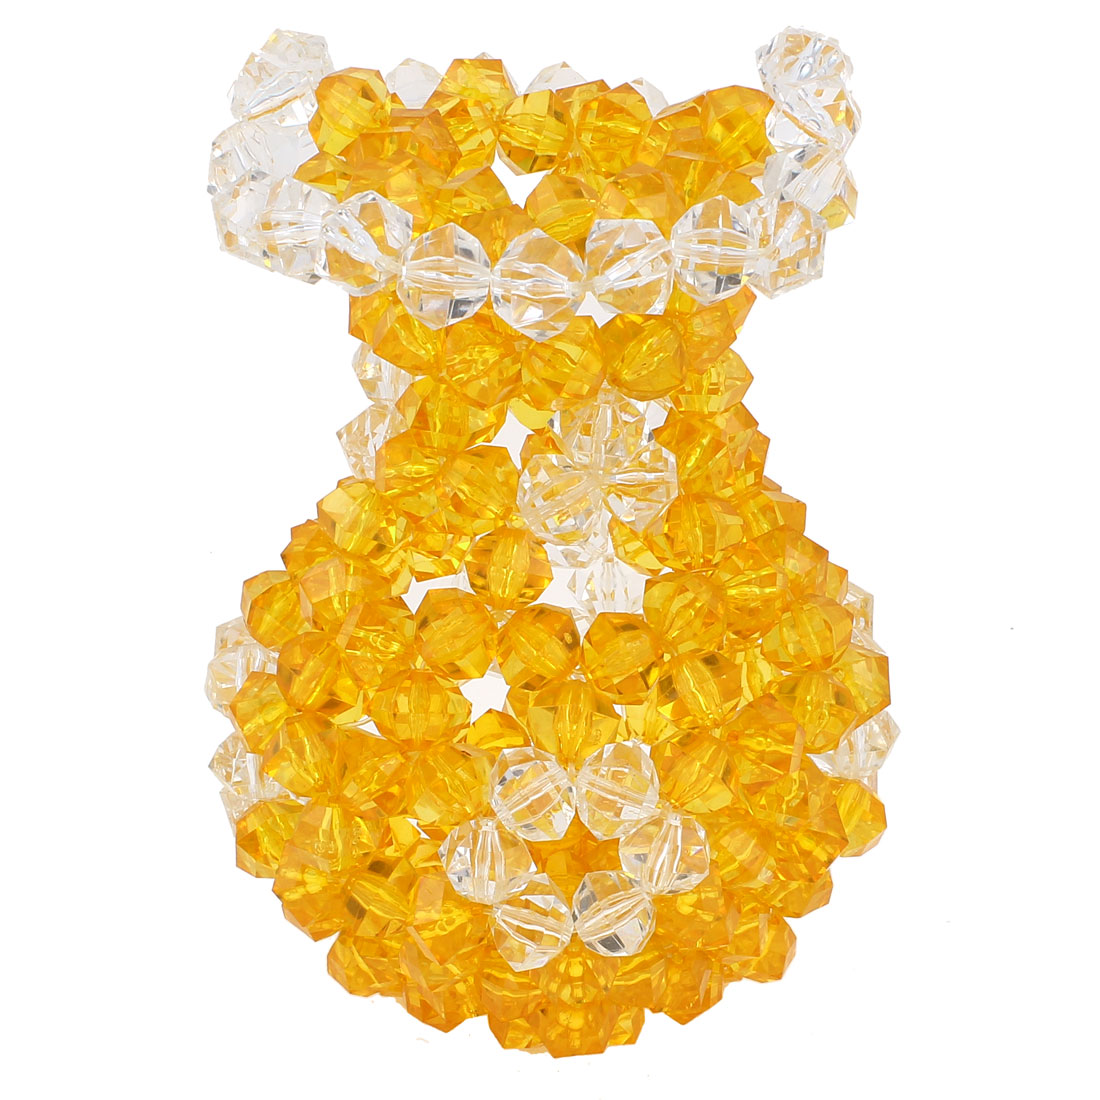 "Room Decoration Handcraft Acrylic Beads Faux Crystal Vase 7.1"" Orange Clear"